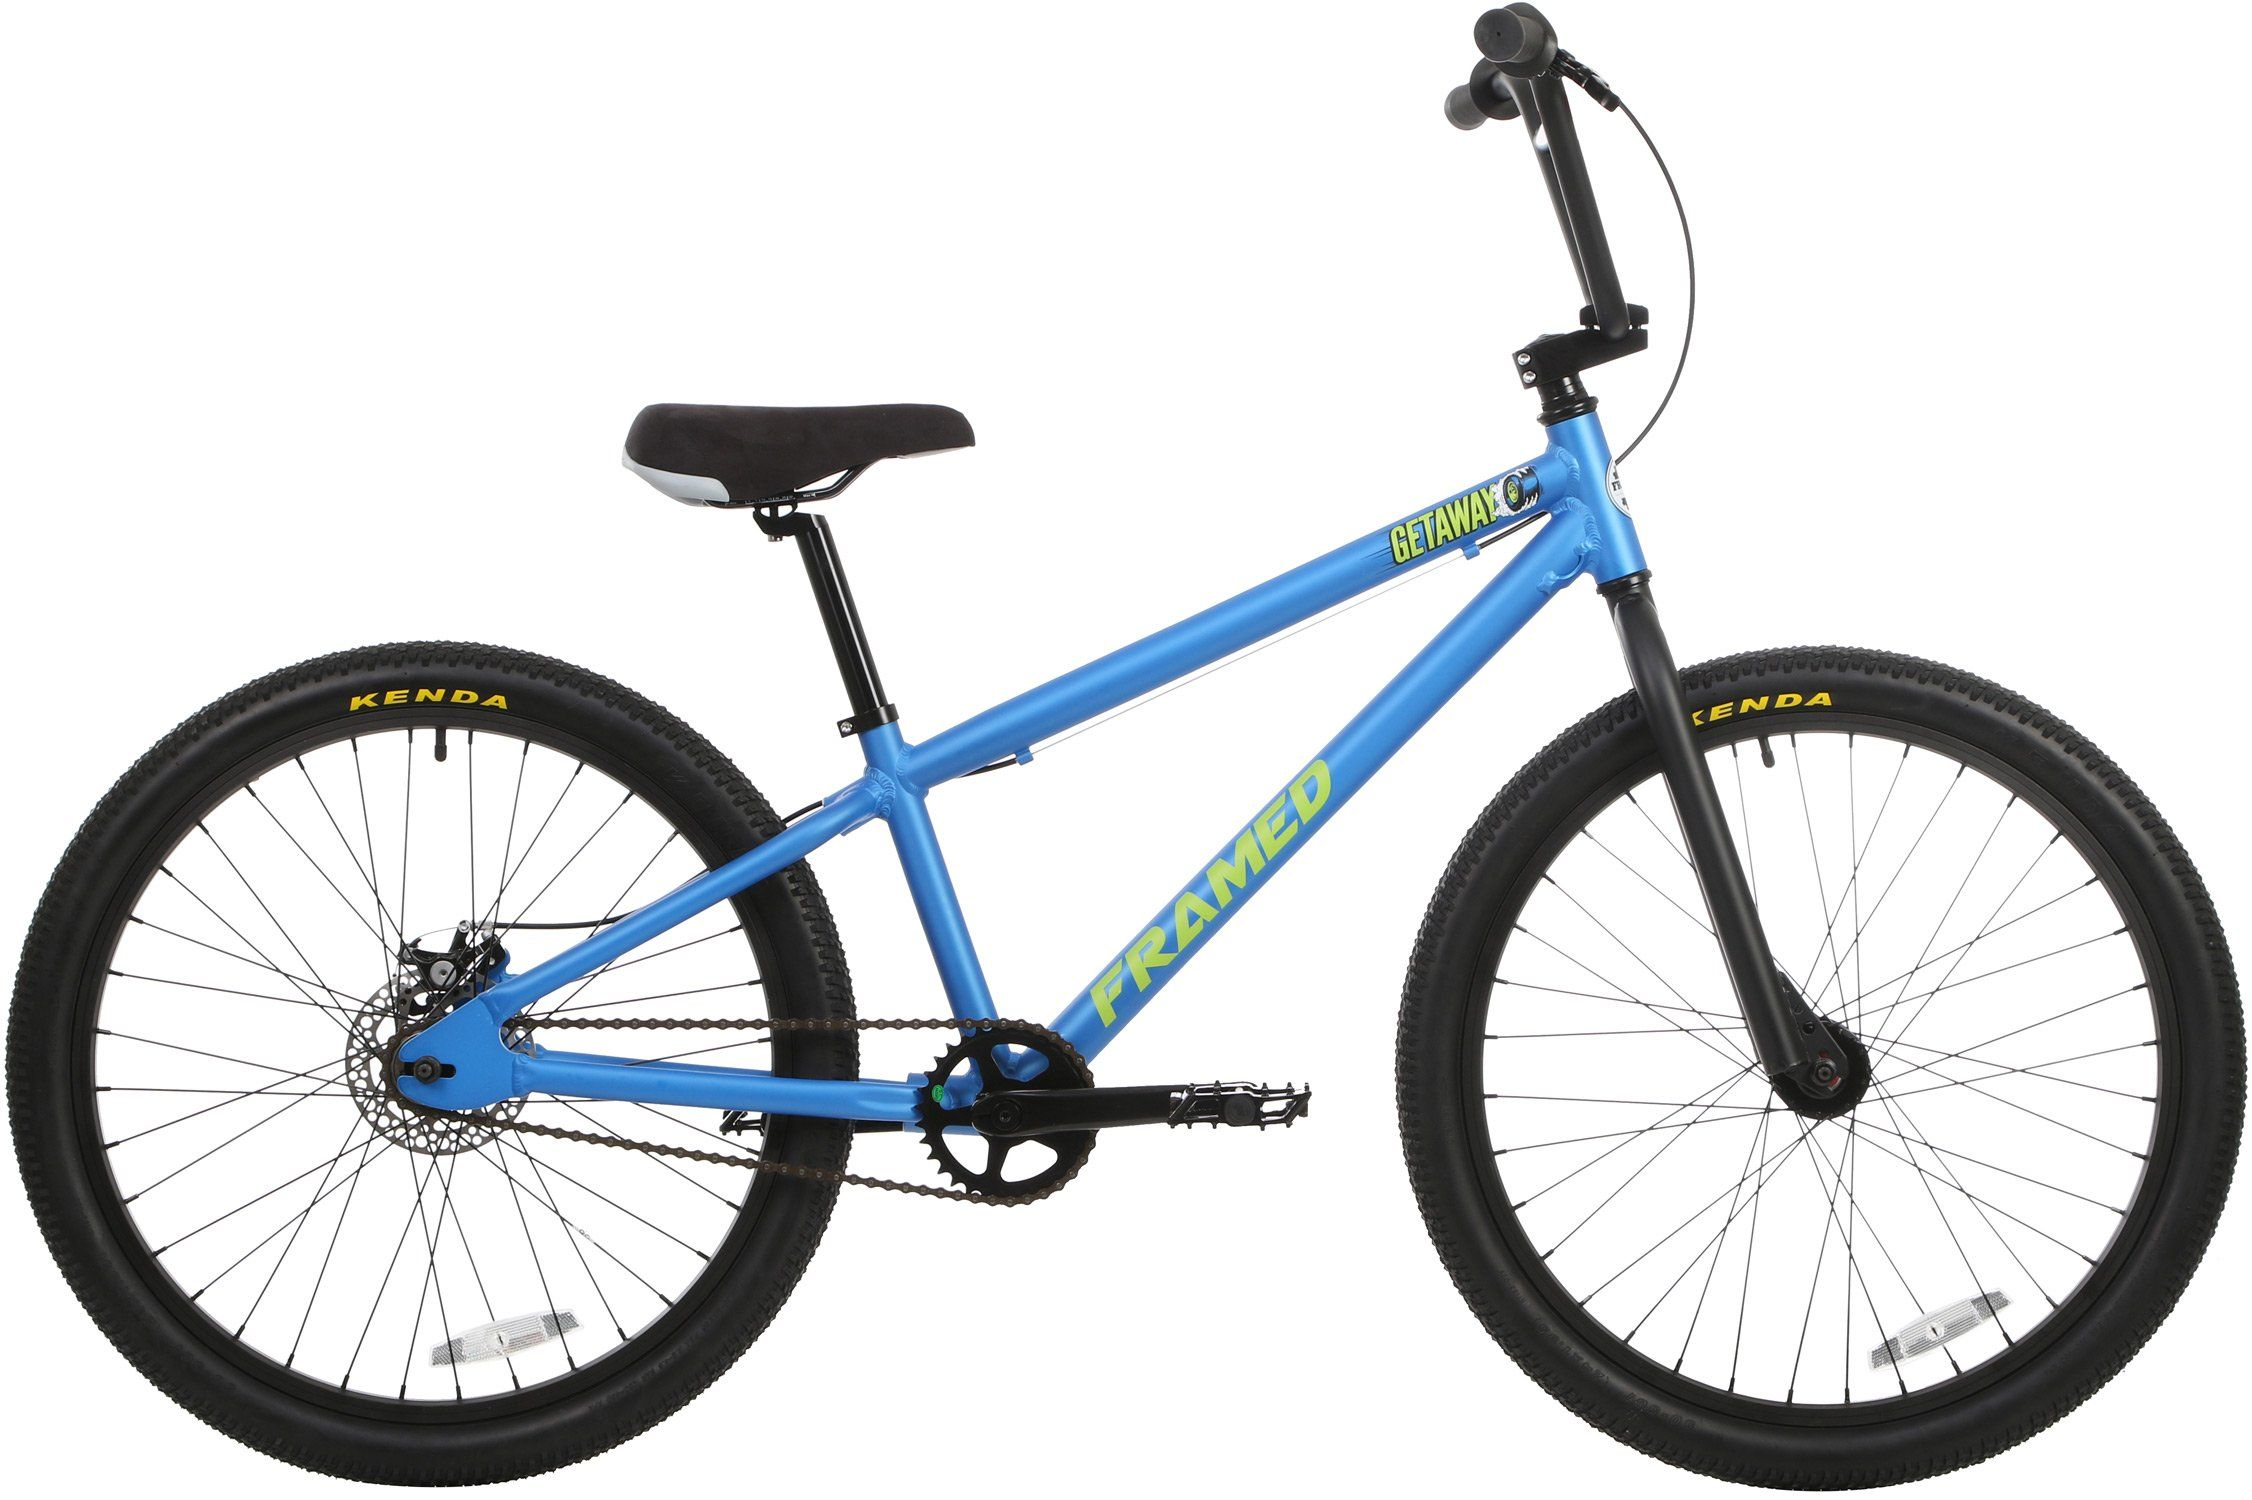 Framed Getaway Bmx Bike Mens Sz 24in 23 25in Top Tube New From Framed Bikes The Getaway 24 Is Your Key To The Next Great Escape An Ideal Bmx Bikes Bmx Bike